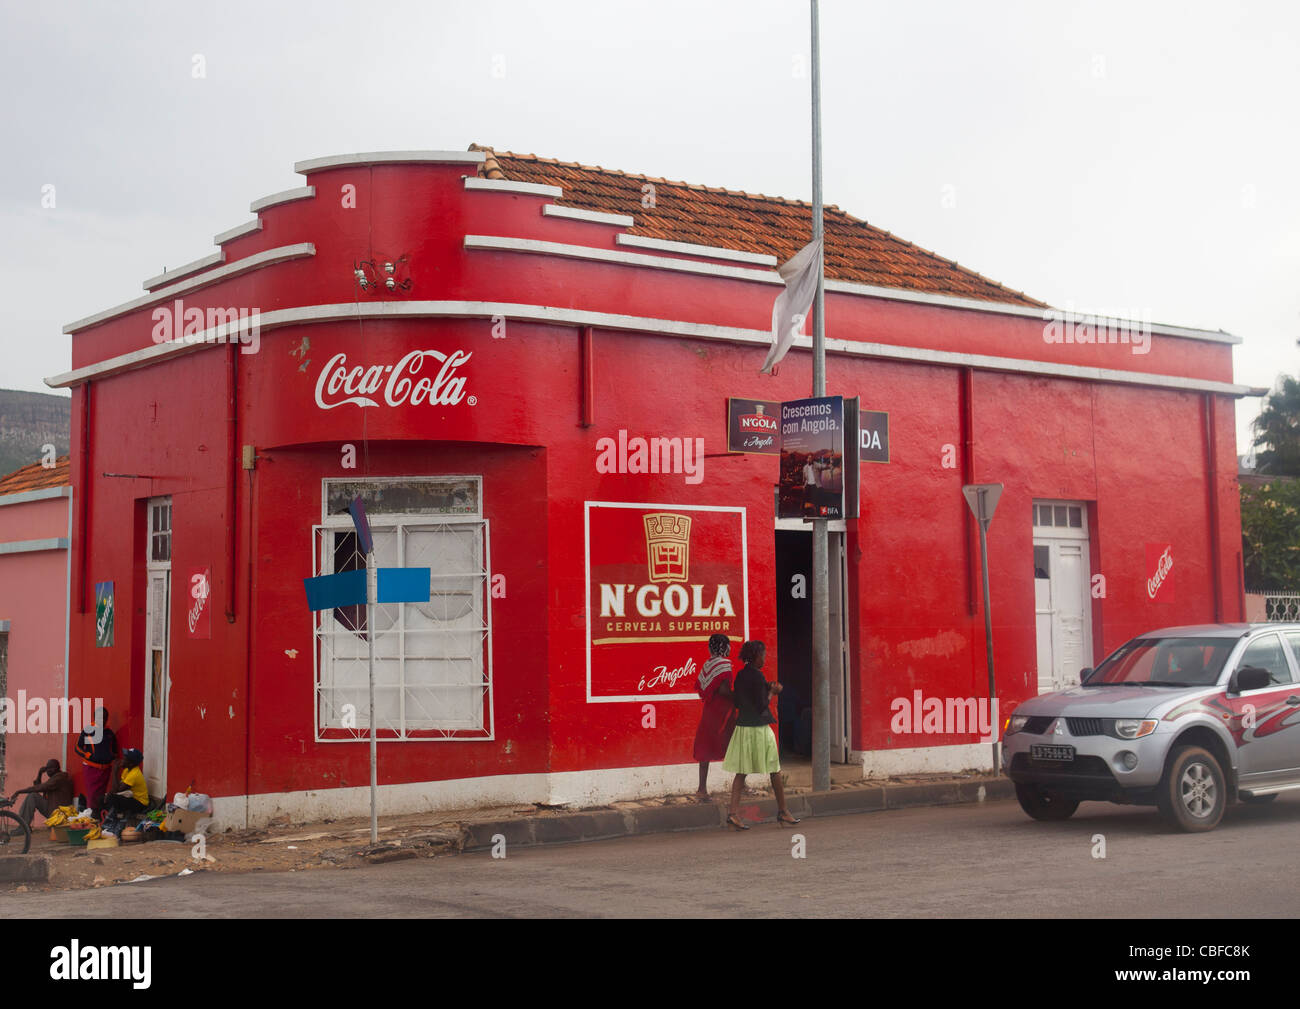 Pub Sponsored By Coca Cola And N Gola Beer In Lubango, Angola - Stock Image